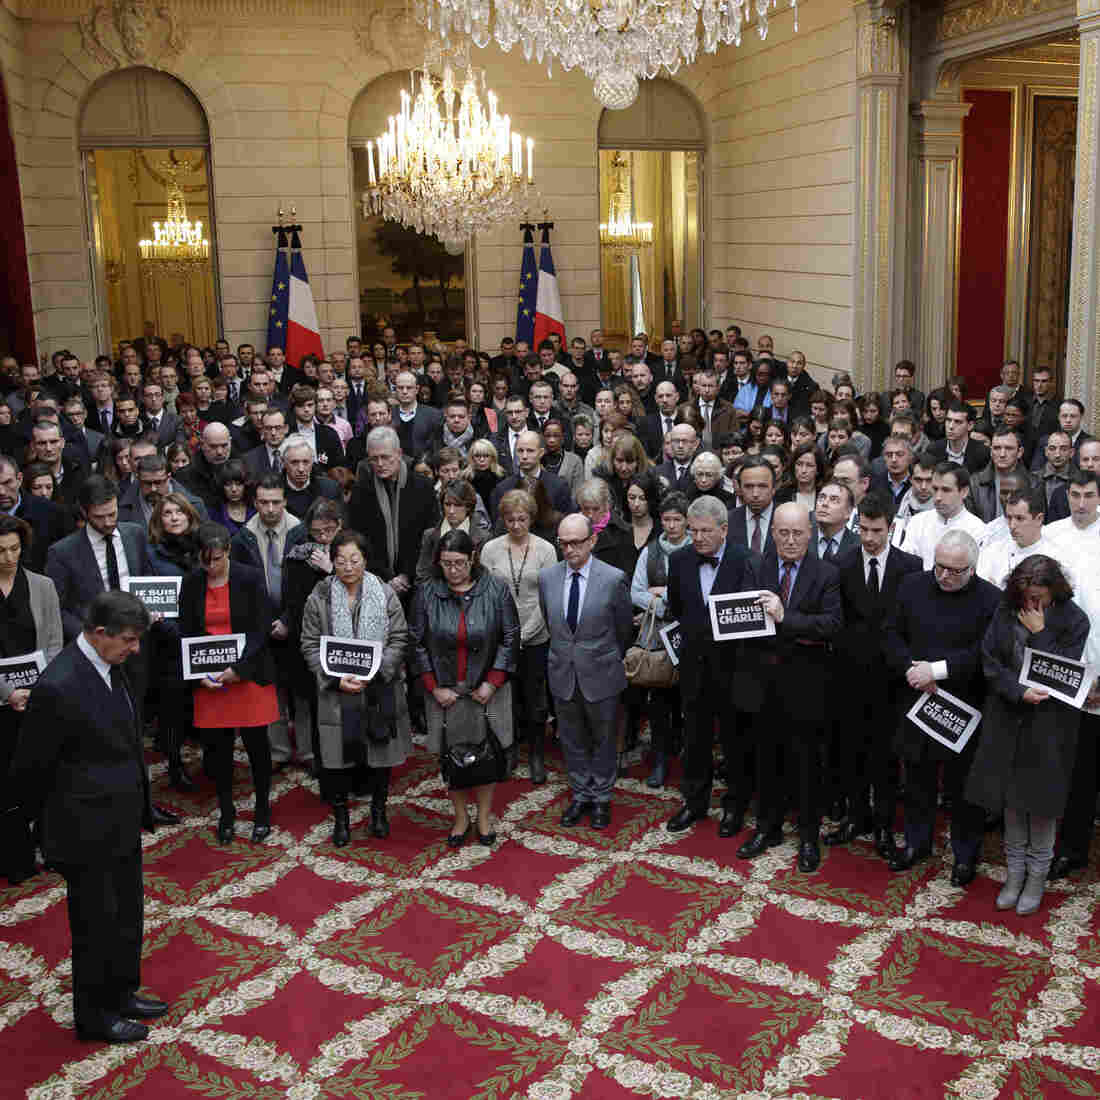 France Observes Moment Of Silence For 'Charlie Hebdo' Victims